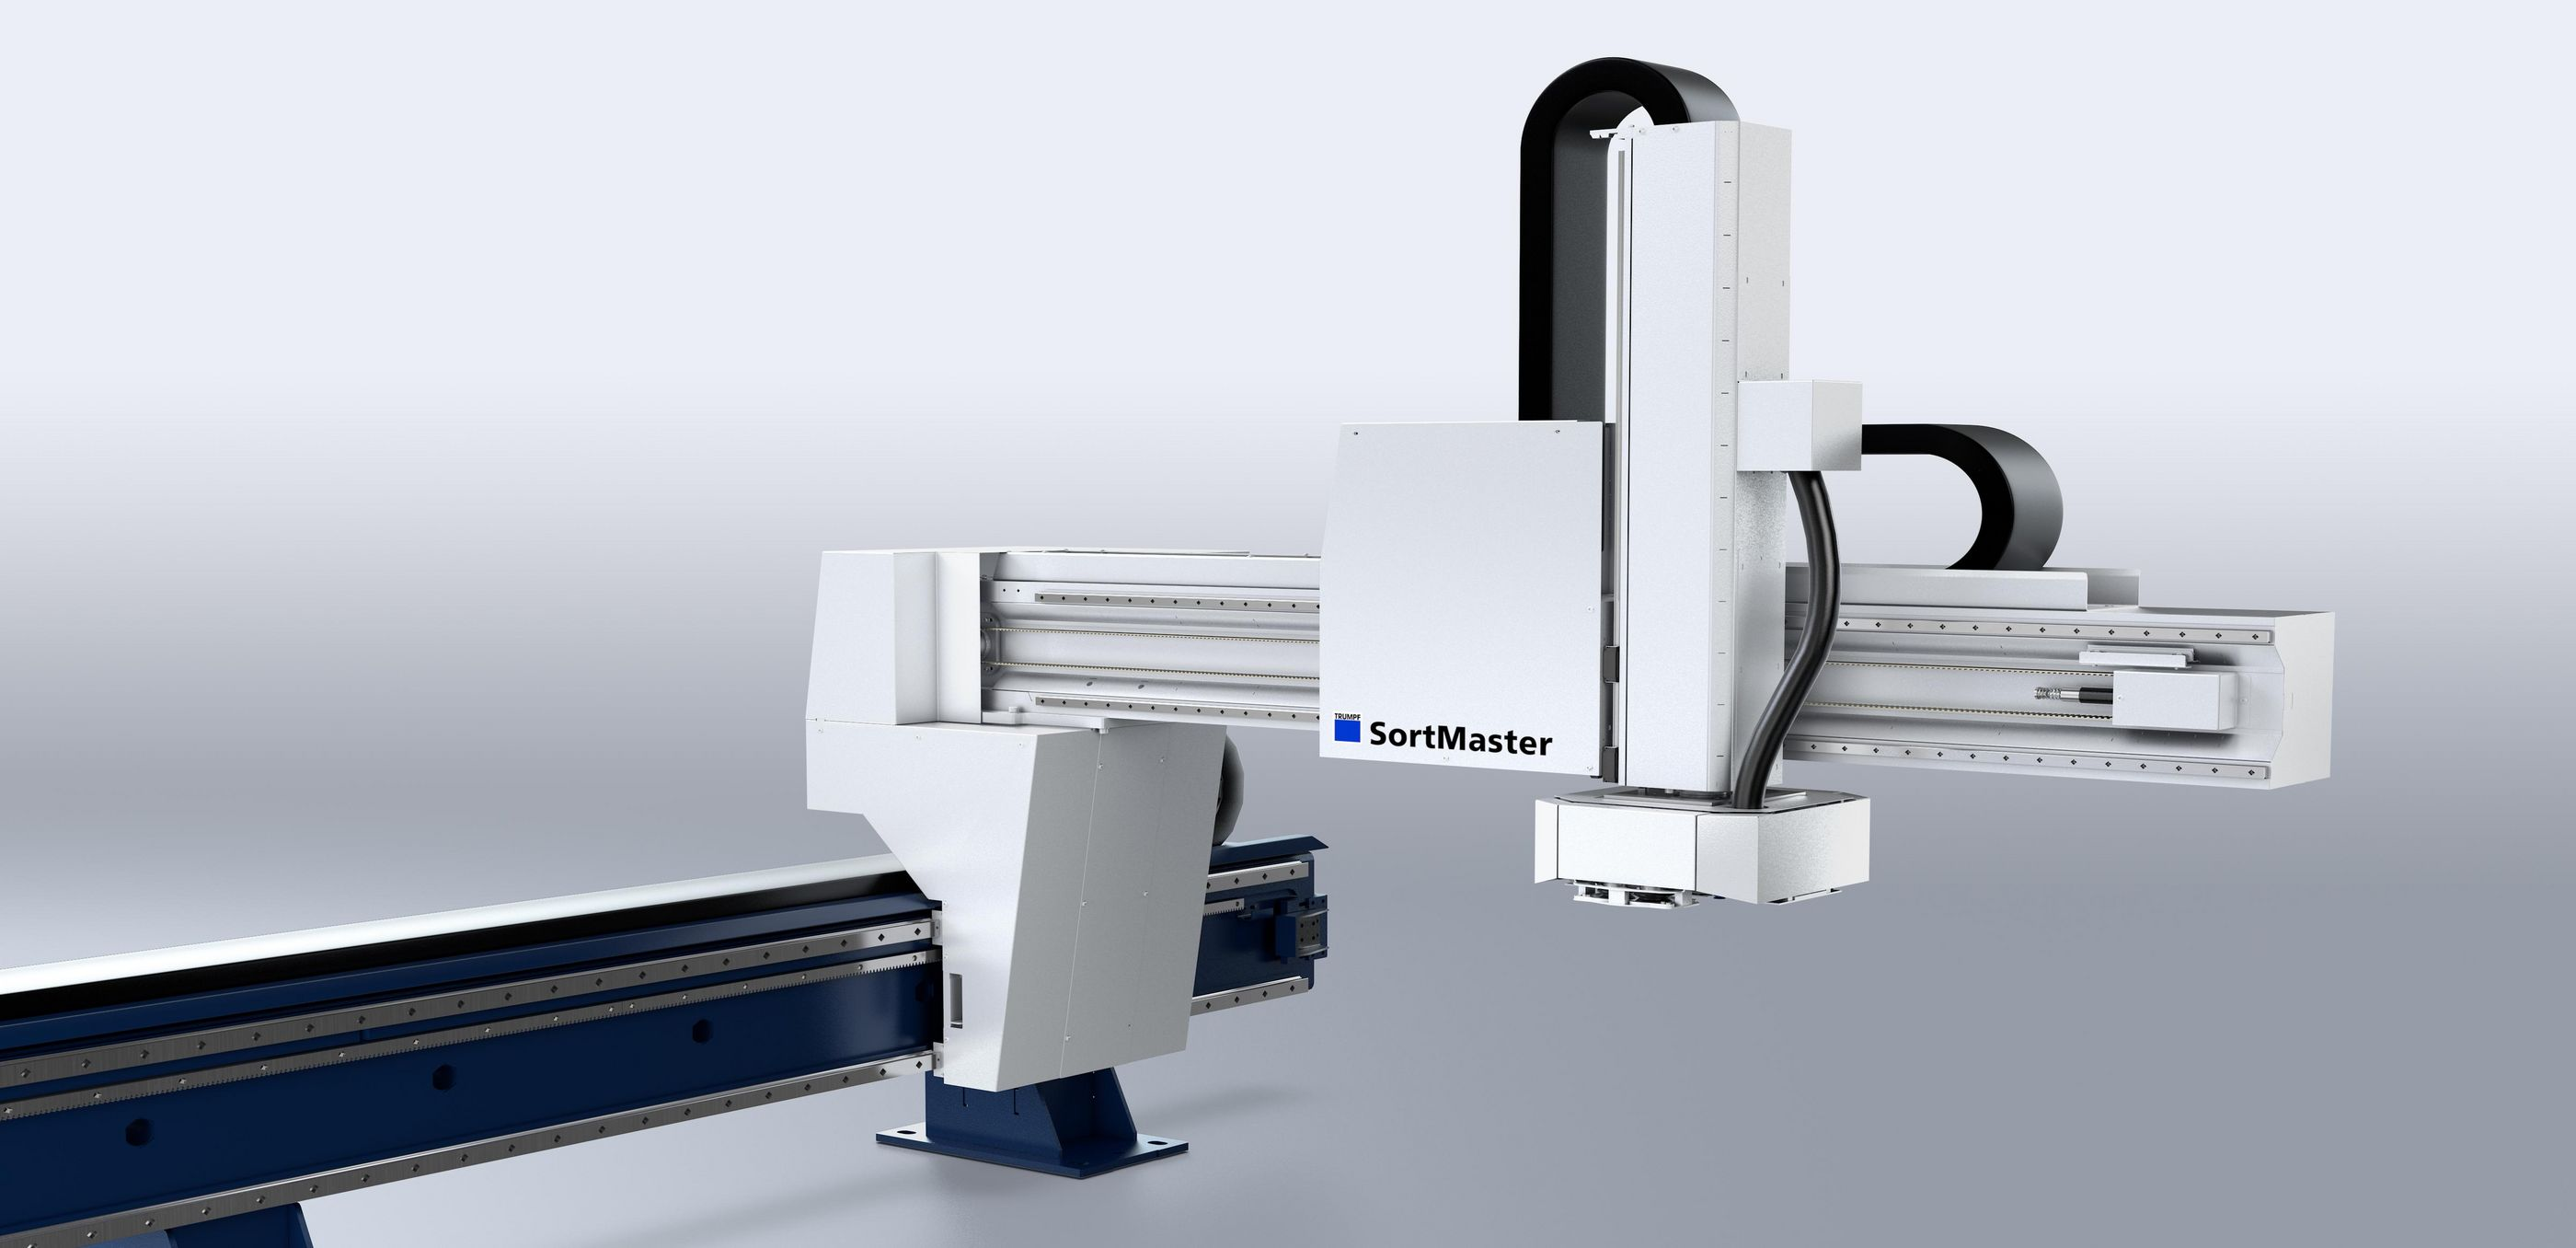 SortMaster: fully automated sorting of small and large parts